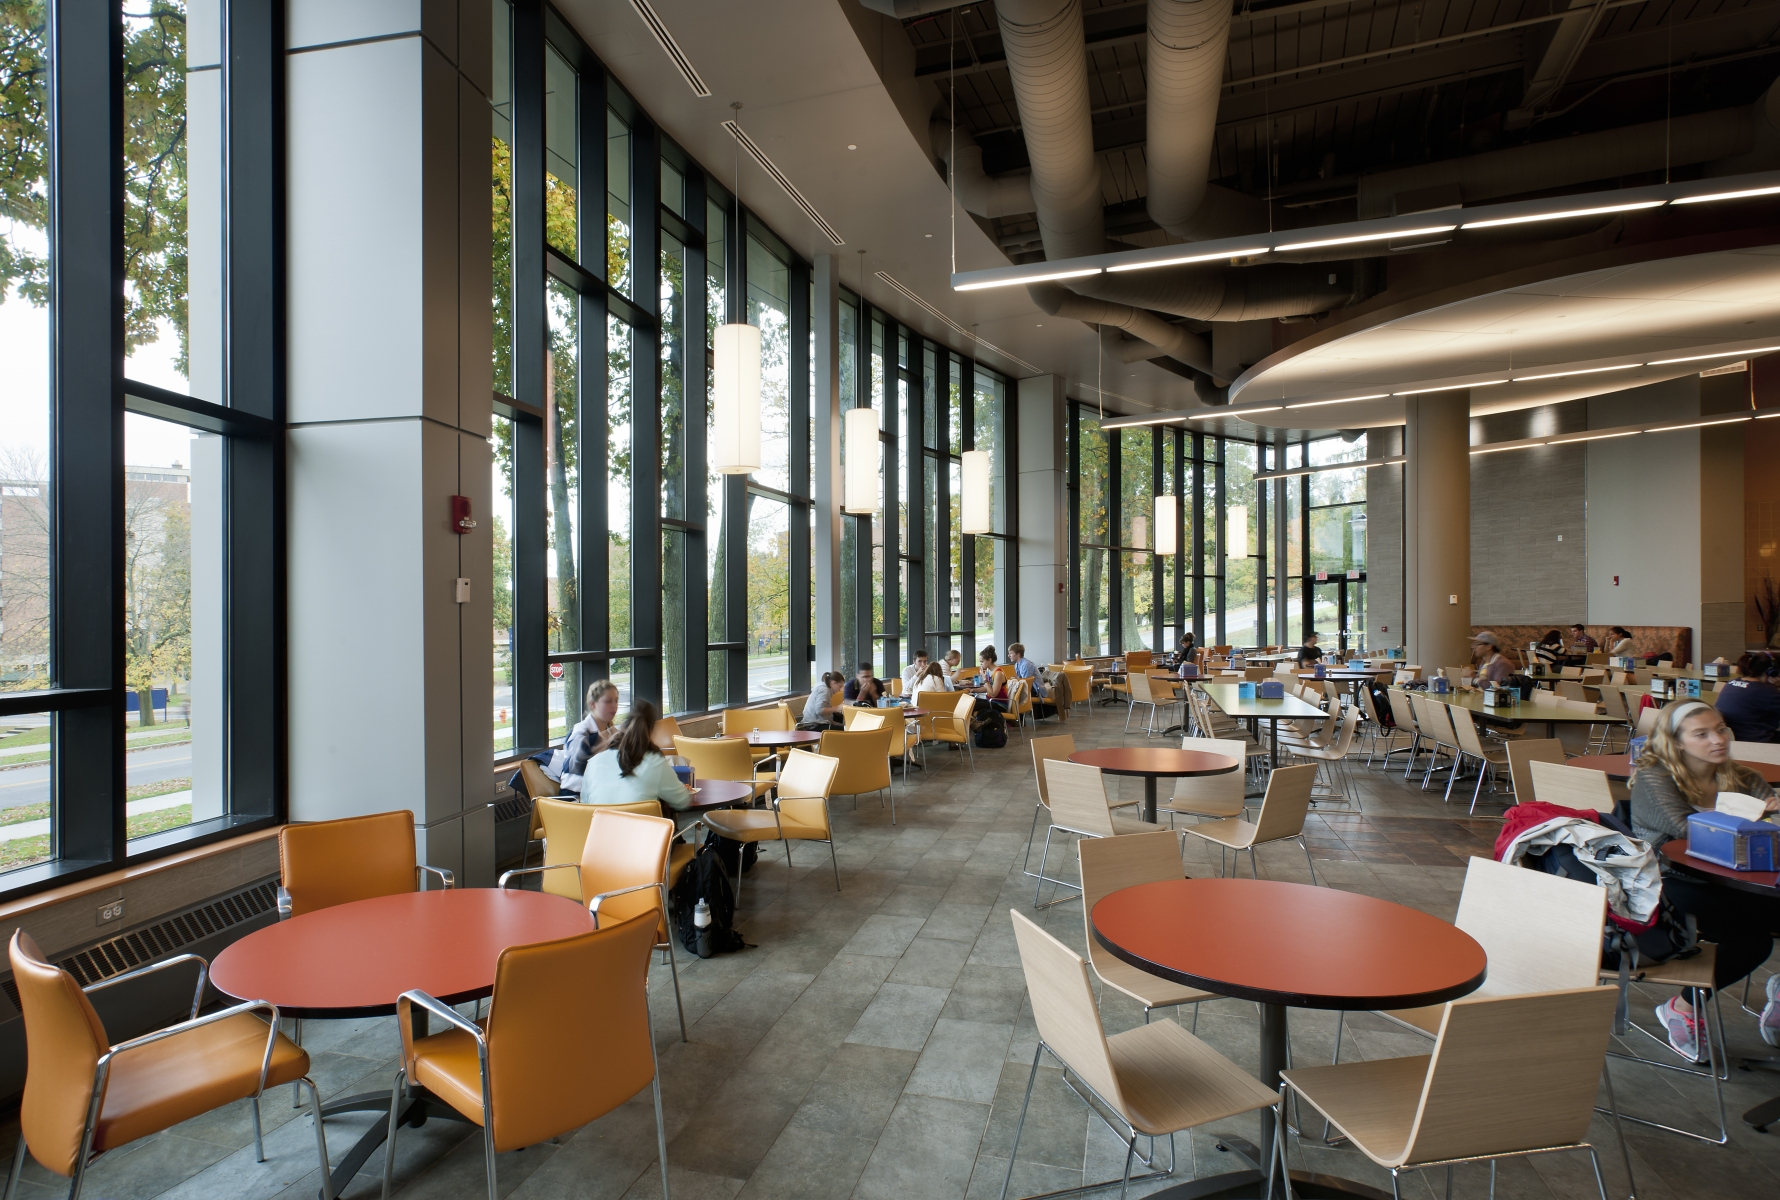 HE_UConn-McMahon-Dining-Hall-2